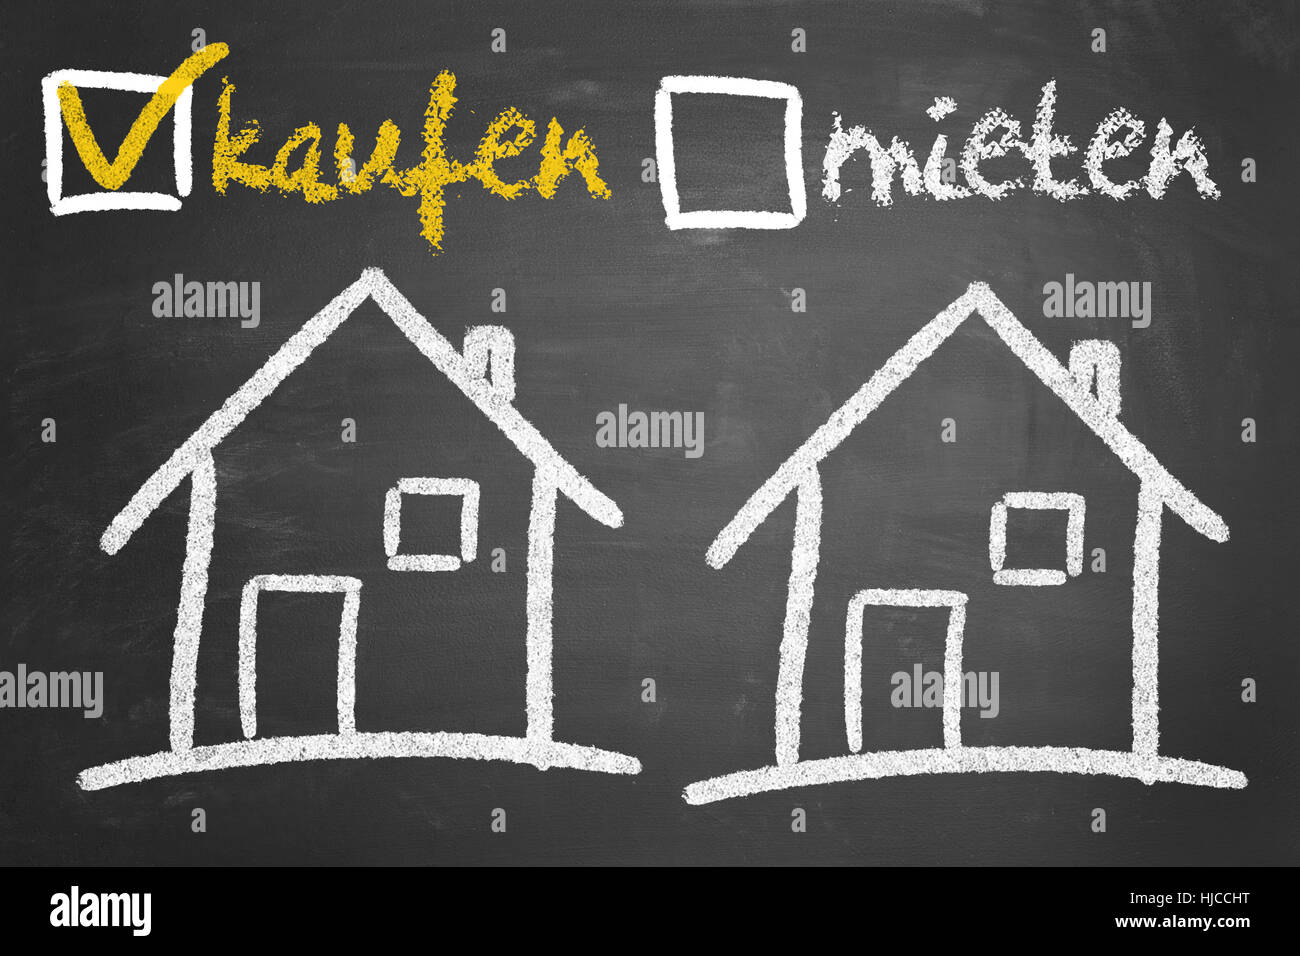 Concept on blackboard with German text 'kaufen' (buying) and 'mieten' (renting) - Stock Image